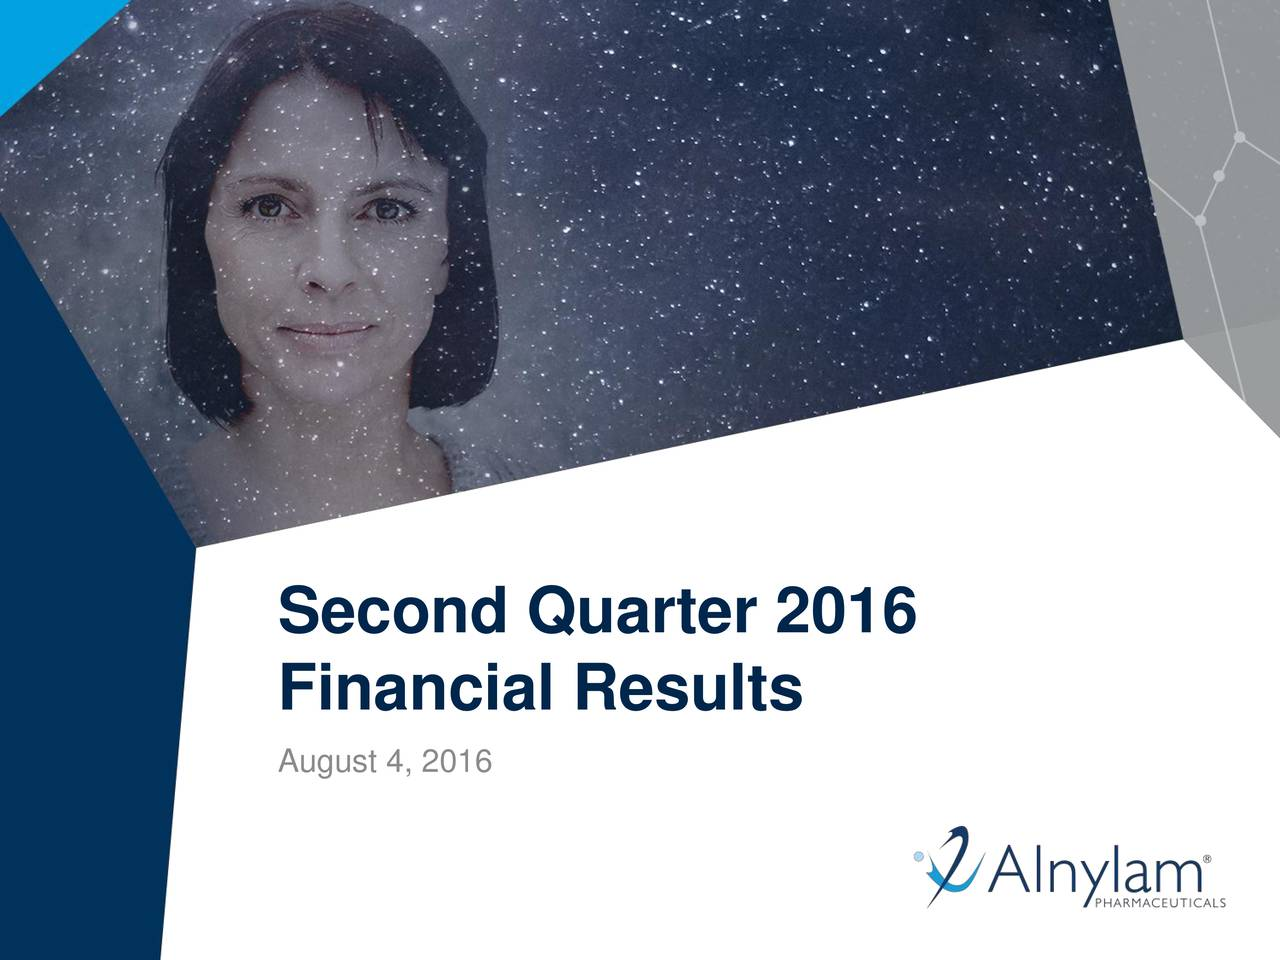 Financial Results August 4, 2016